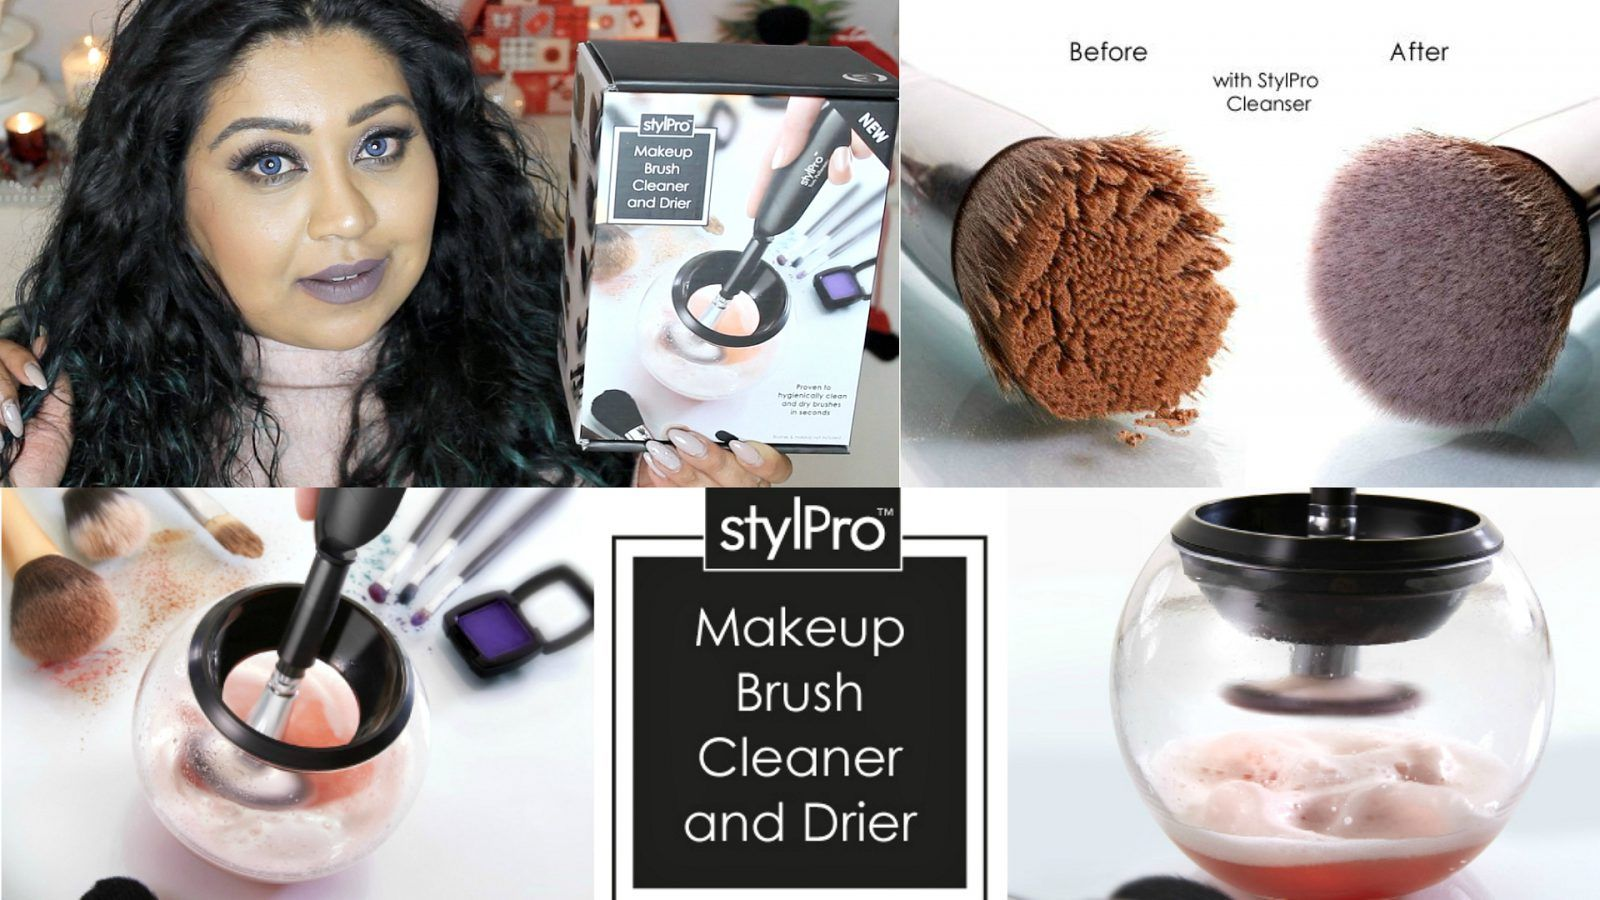 20 Second Brush Cleaning Wet To Dry In depth review